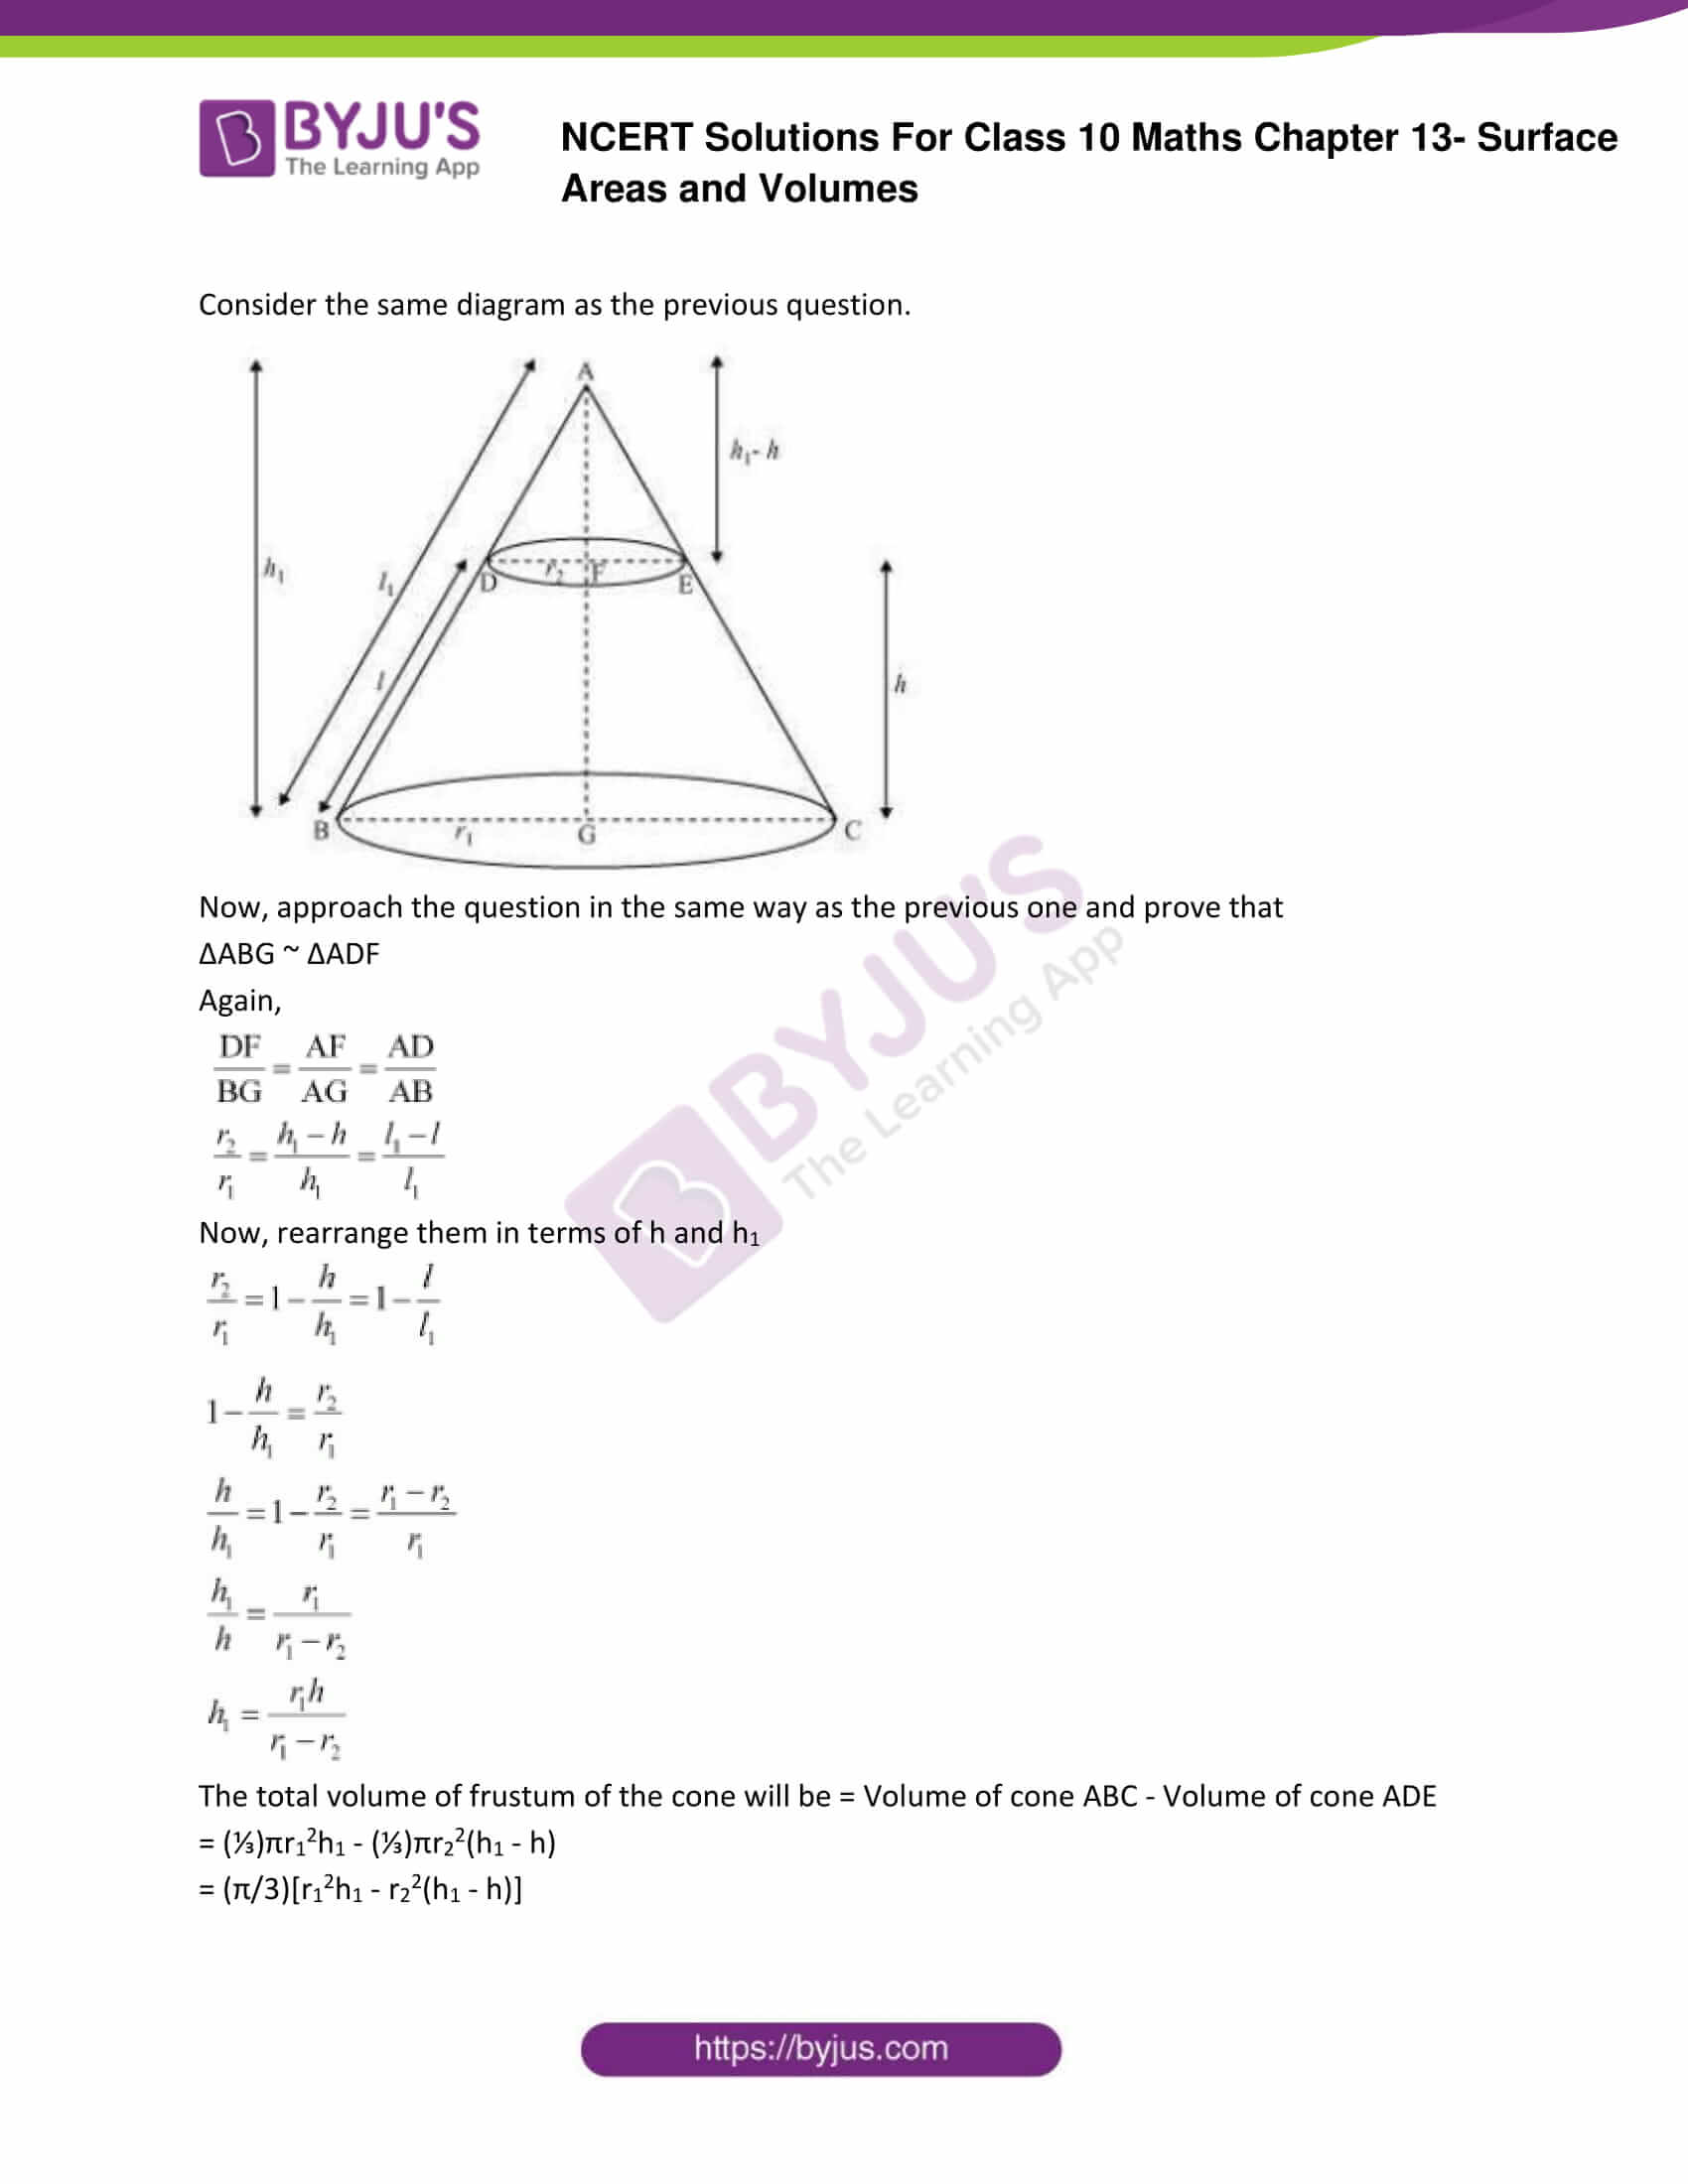 NCERT Solutions Class 10 Maths Chapter 13 Surface Areas and Volumes Part 30